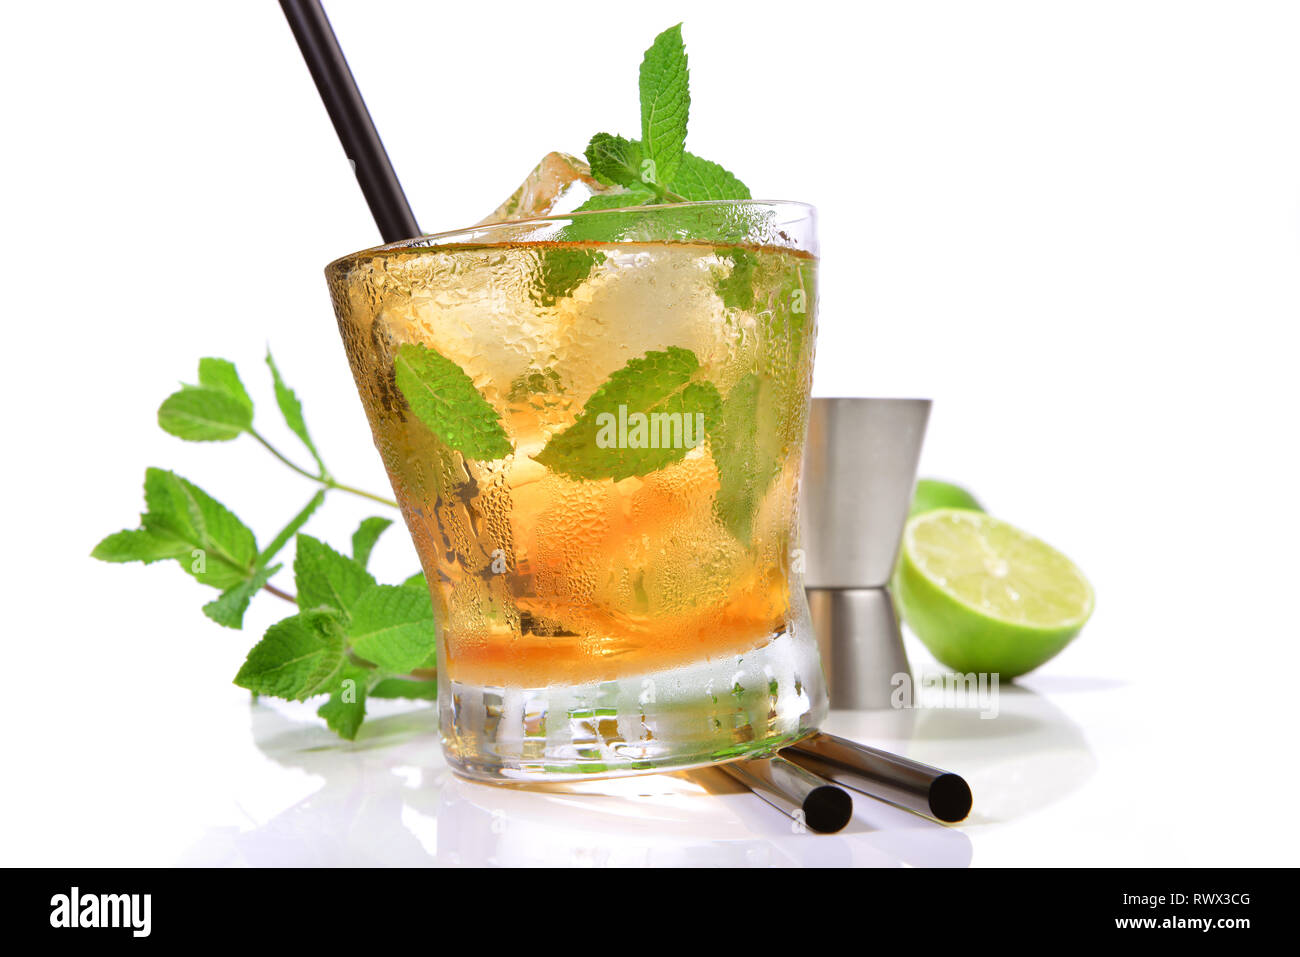 Mint Whisky Cocktail on white Background - Stock Image